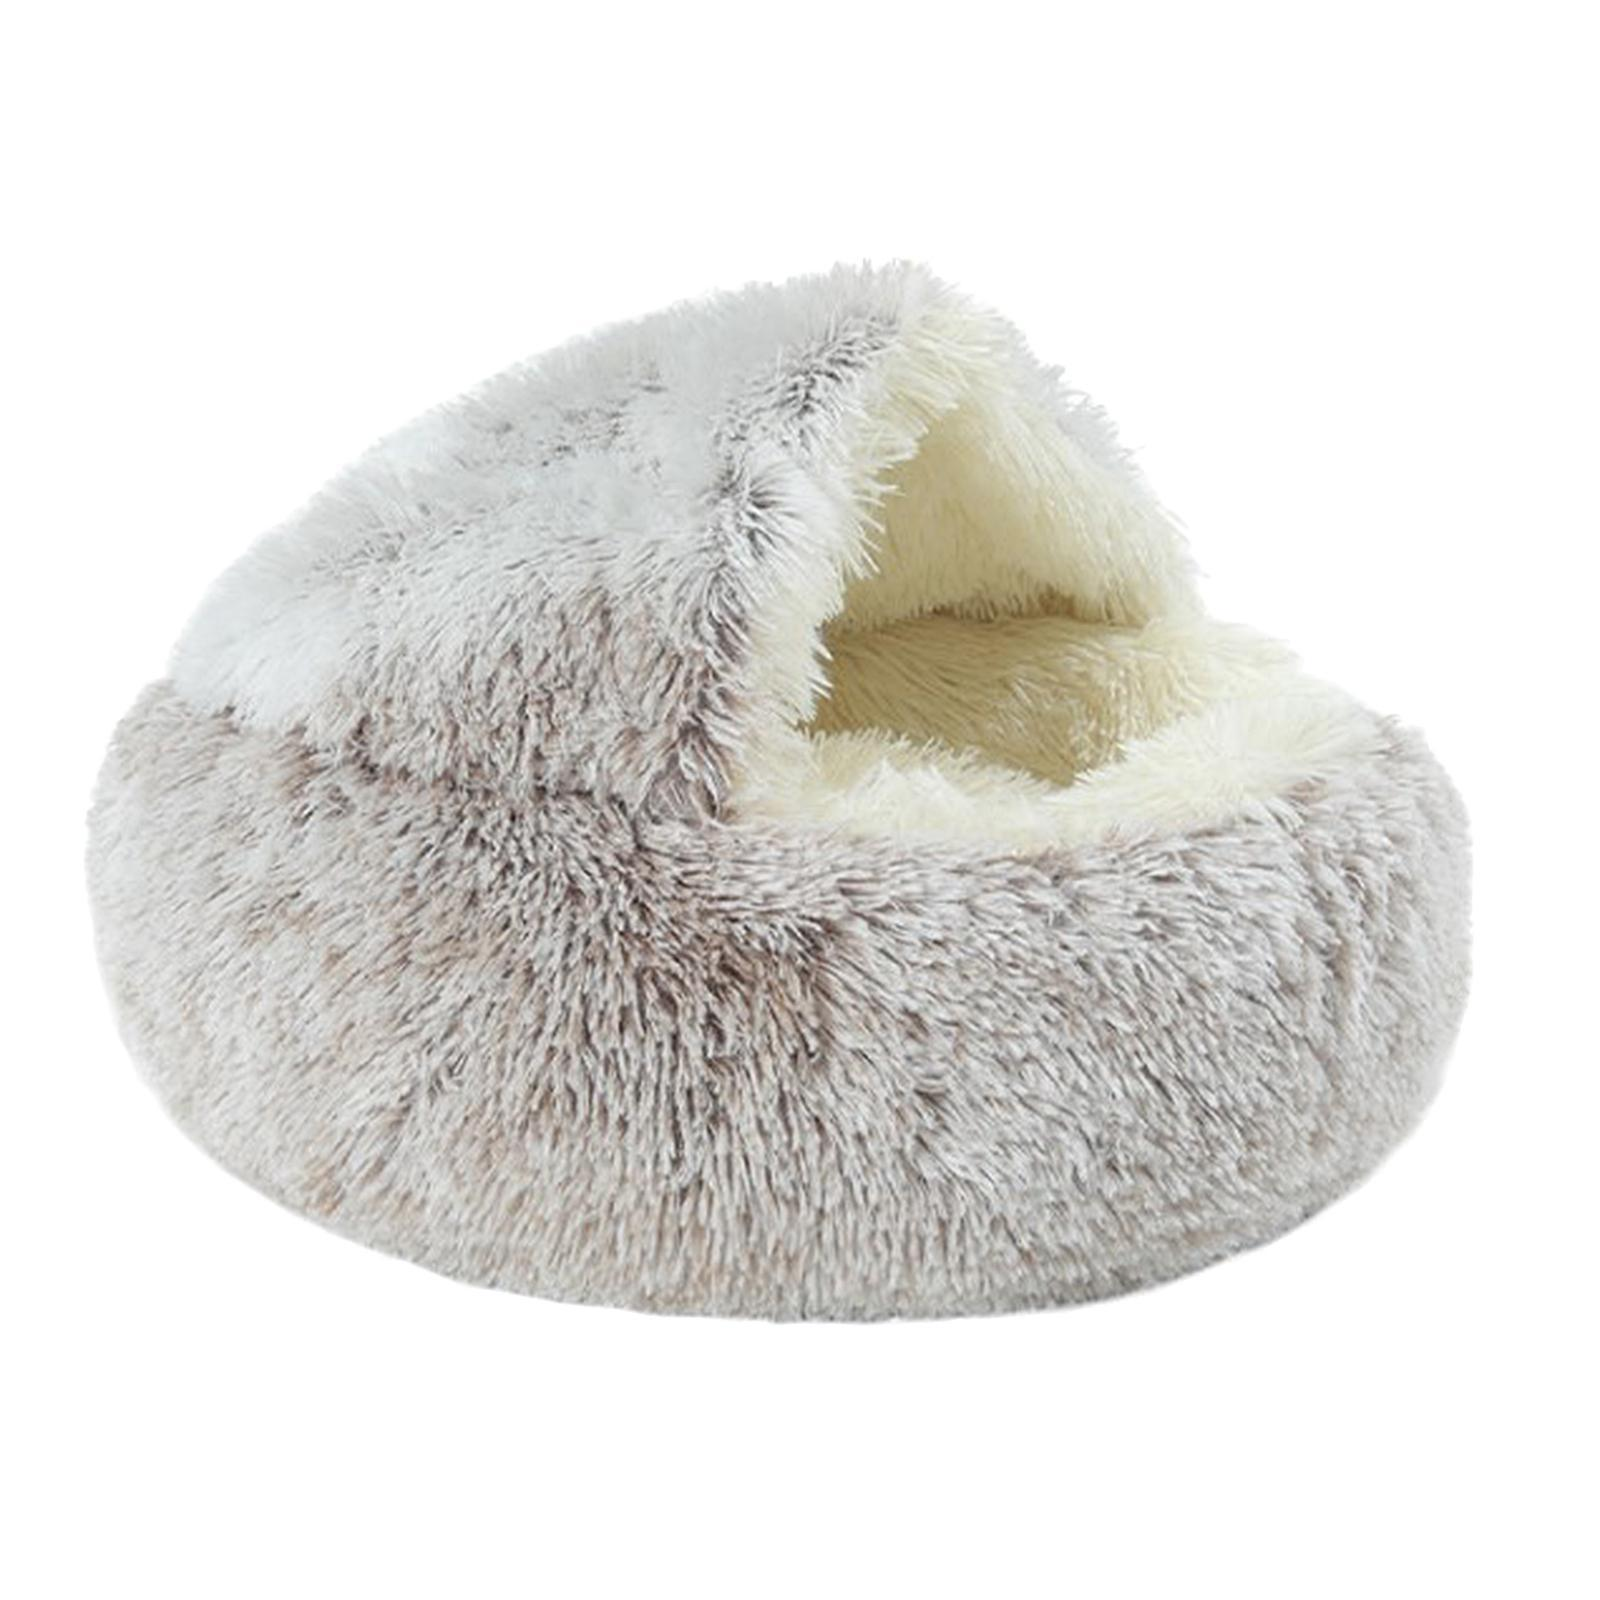 miniature 37 - Pet Chien Chat Calmant Lit Rond Nid Chaud En Peluche Confortable de Couchage